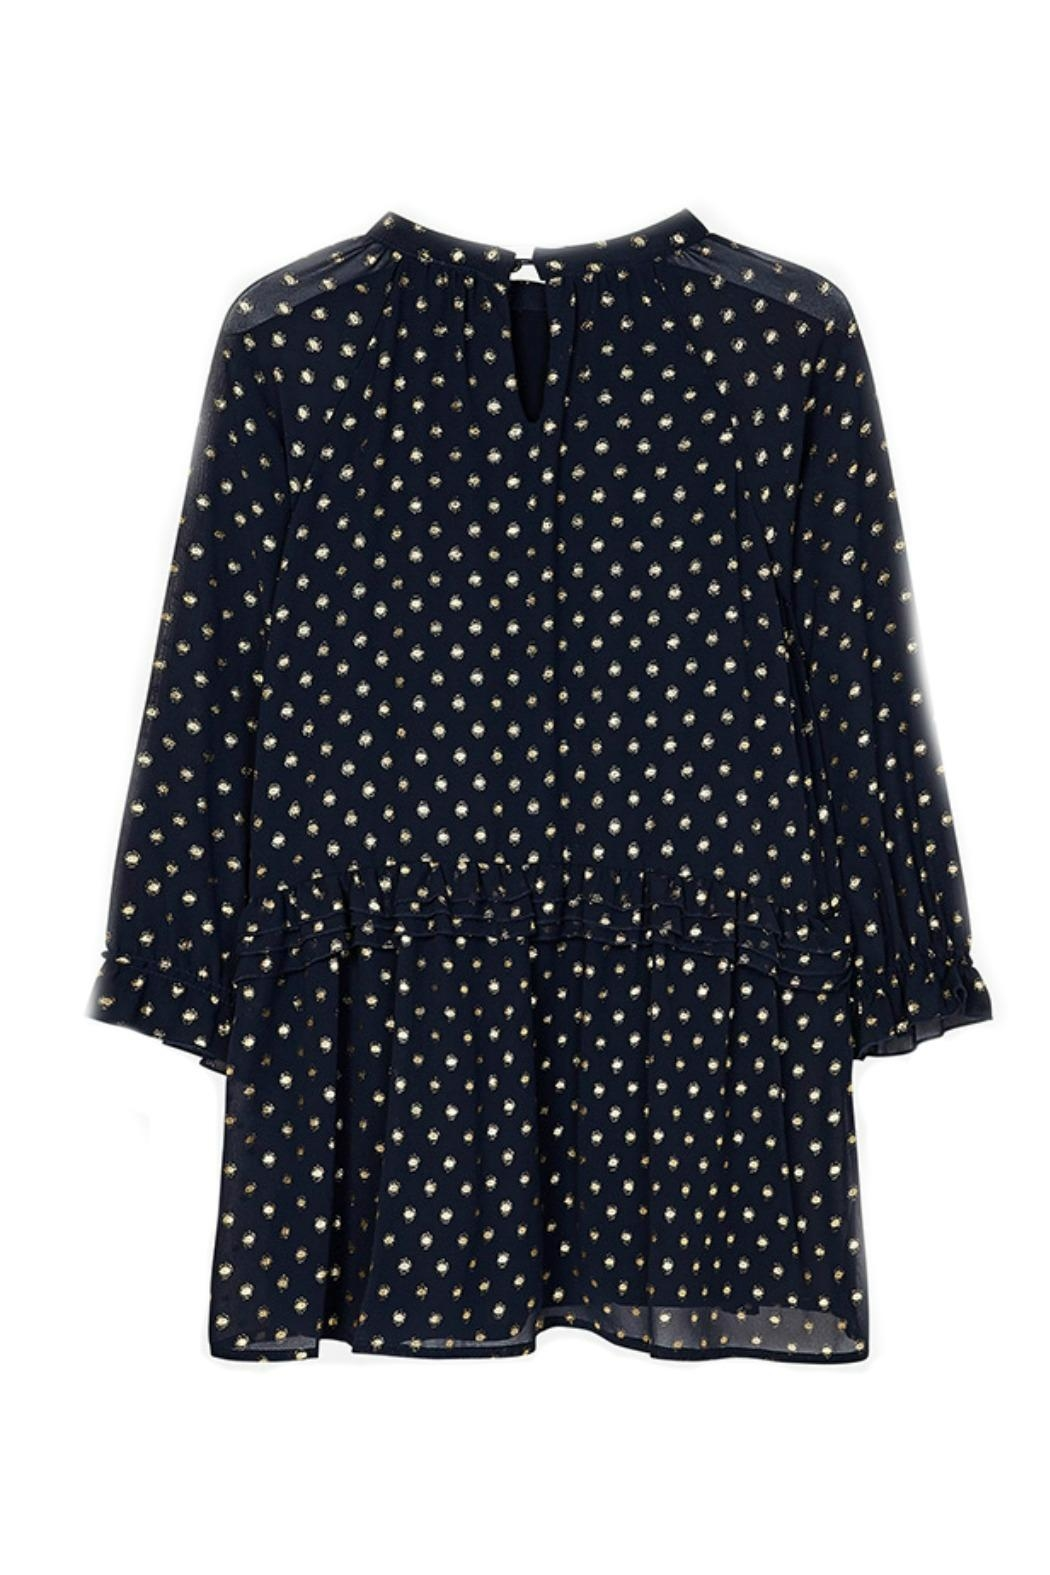 Mayoral Chiffon-Navy-Dress-With-Gold-Metallic-Dots - Back Cropped Image